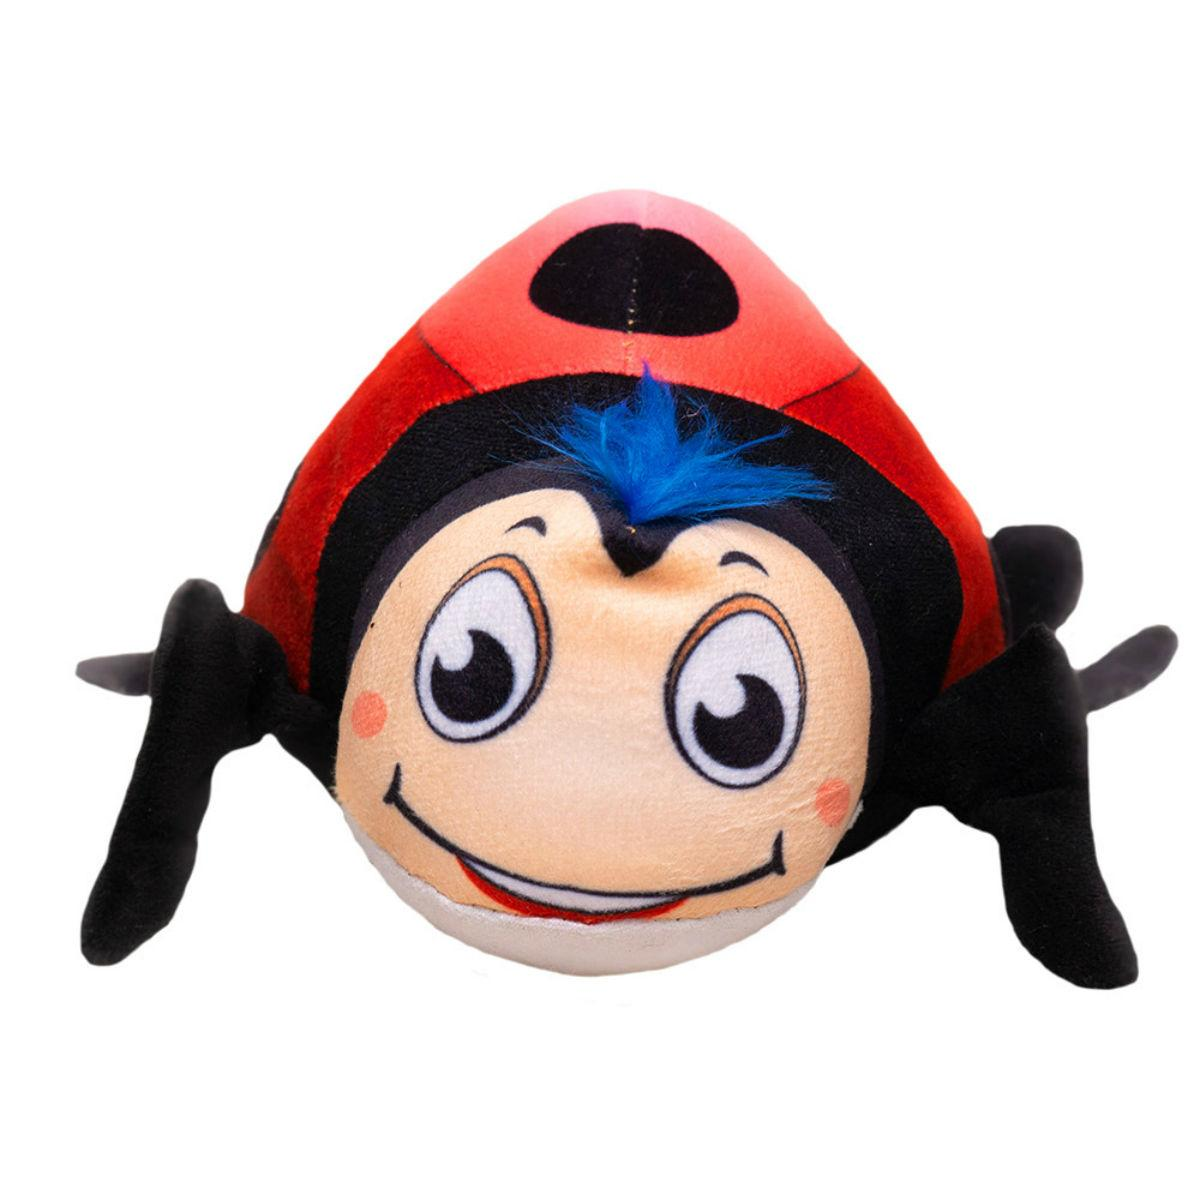 Happy Tails Doodles Plush Dog Toy - Ladybug